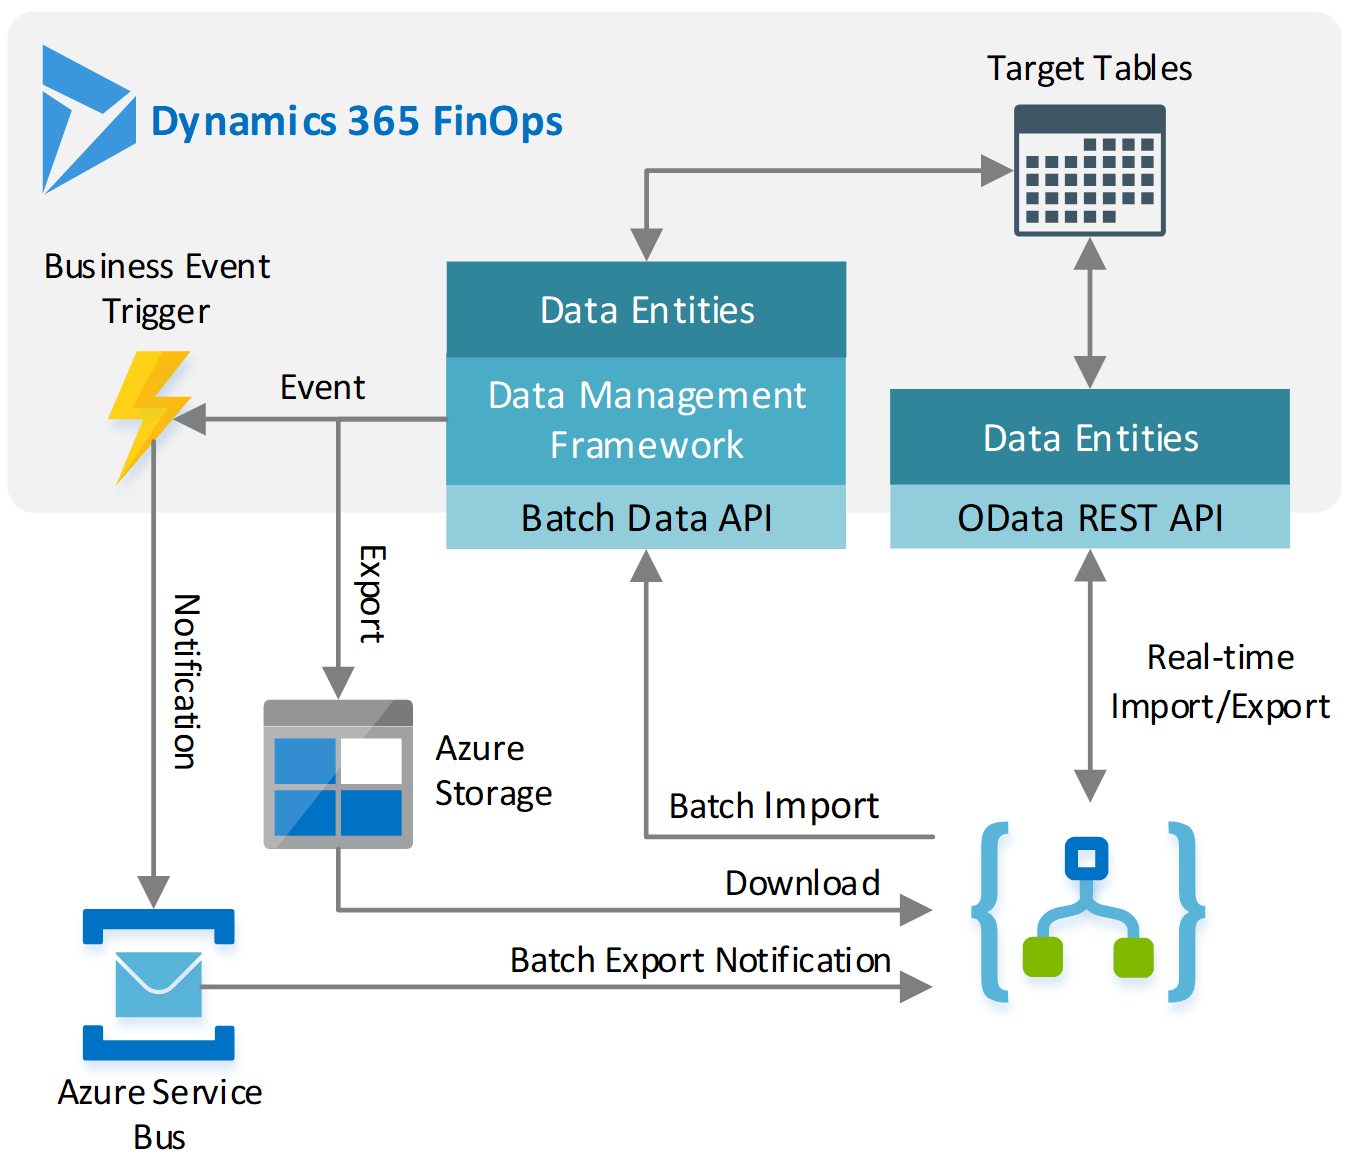 azure queue architecture diagram business events for dynamics 365 for finance and operations     yeap  business events for dynamics 365 for